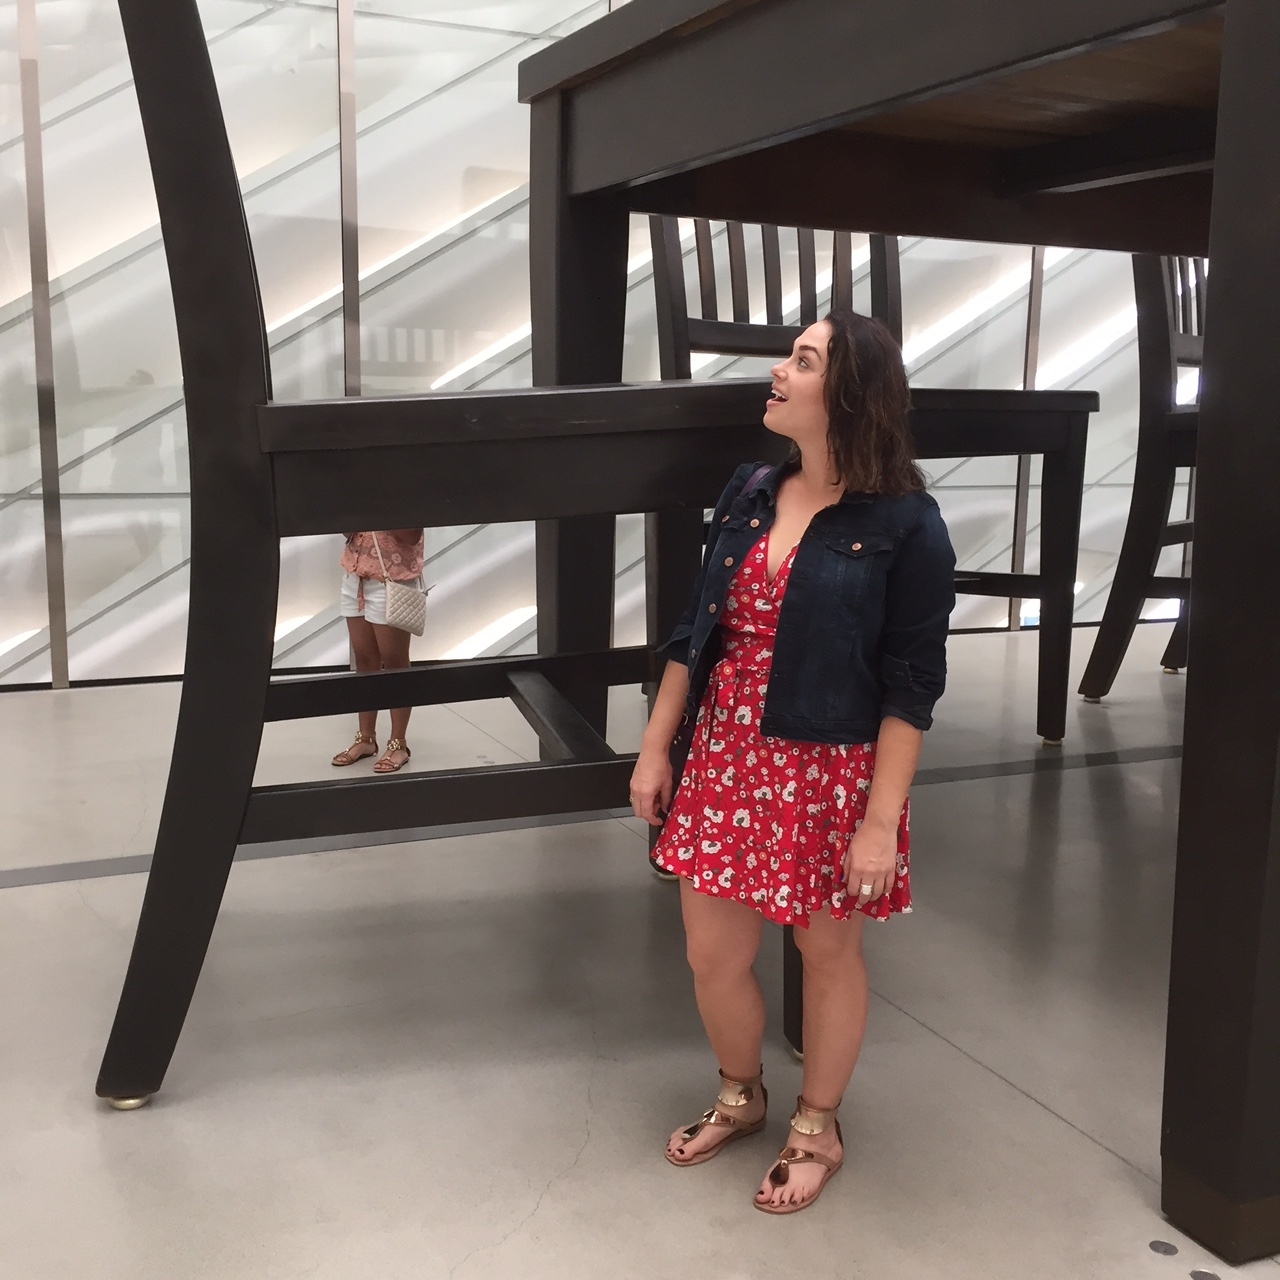 A broad at the Broad Museum